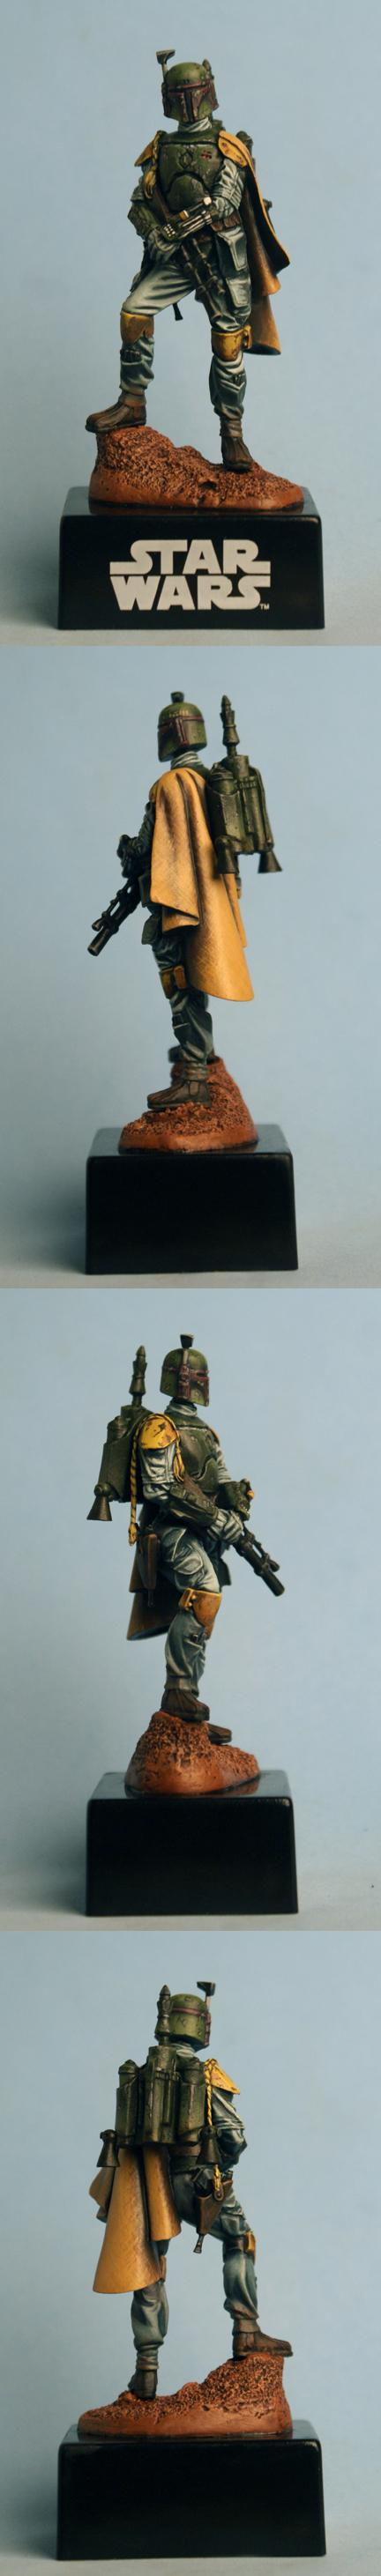 72mm, Boba Fett, Bounty Hunter, Knight Models, Science-fiction, Star Wars